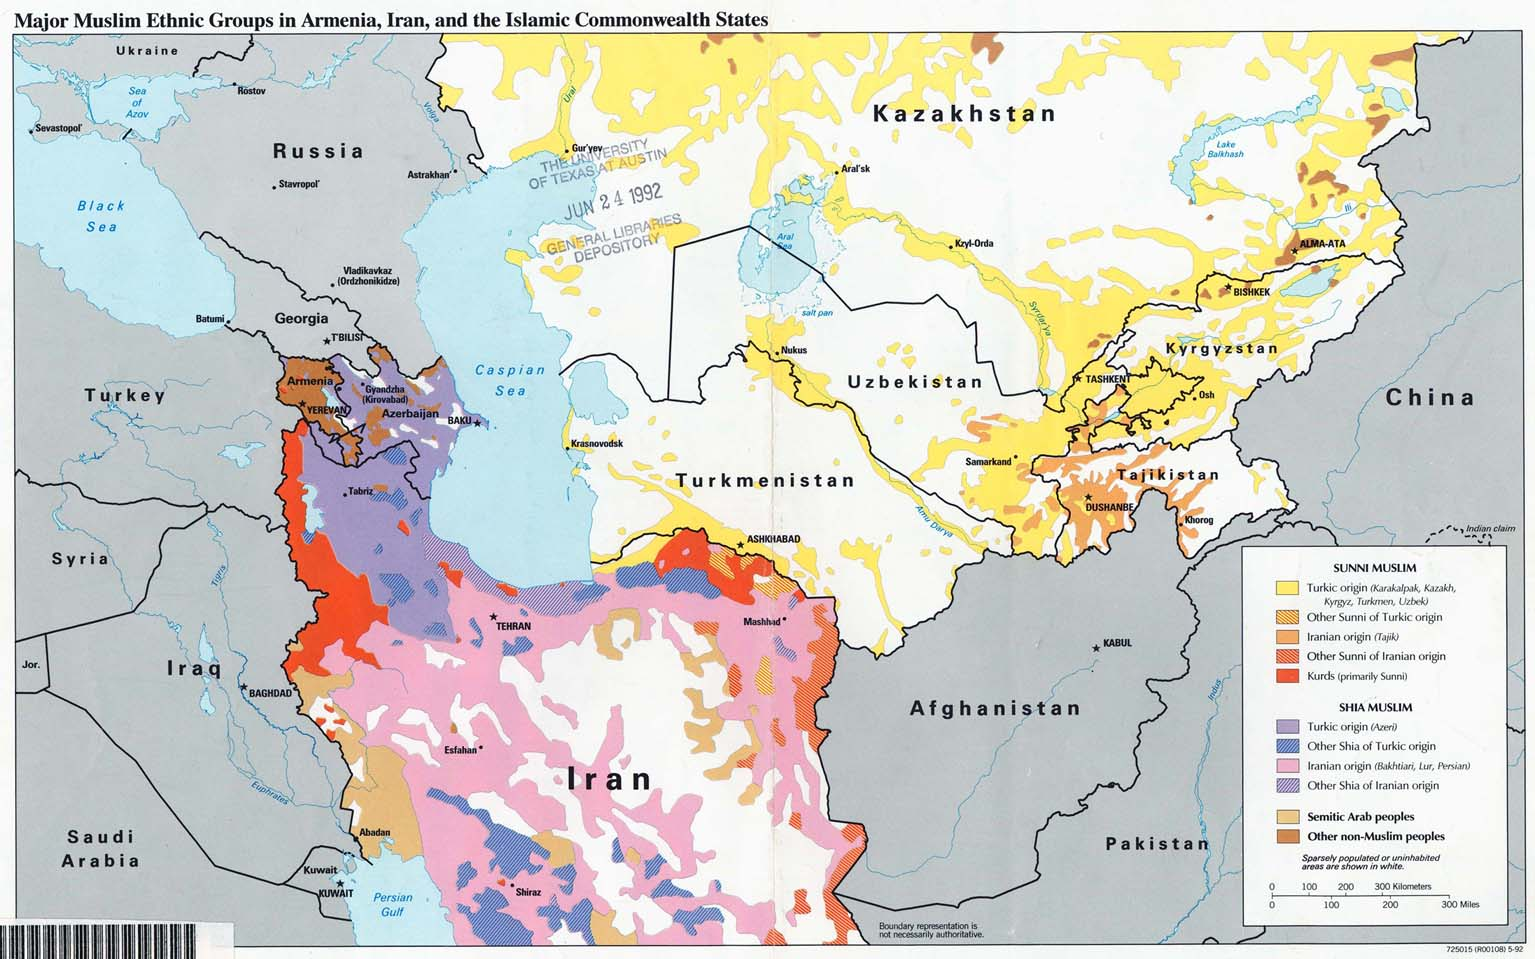 Map of Major Muslim Ethnic Groups in Armenia, Iran, Turkmenistan, Uzbekistan, Tajikistan, Kyrgyzstan